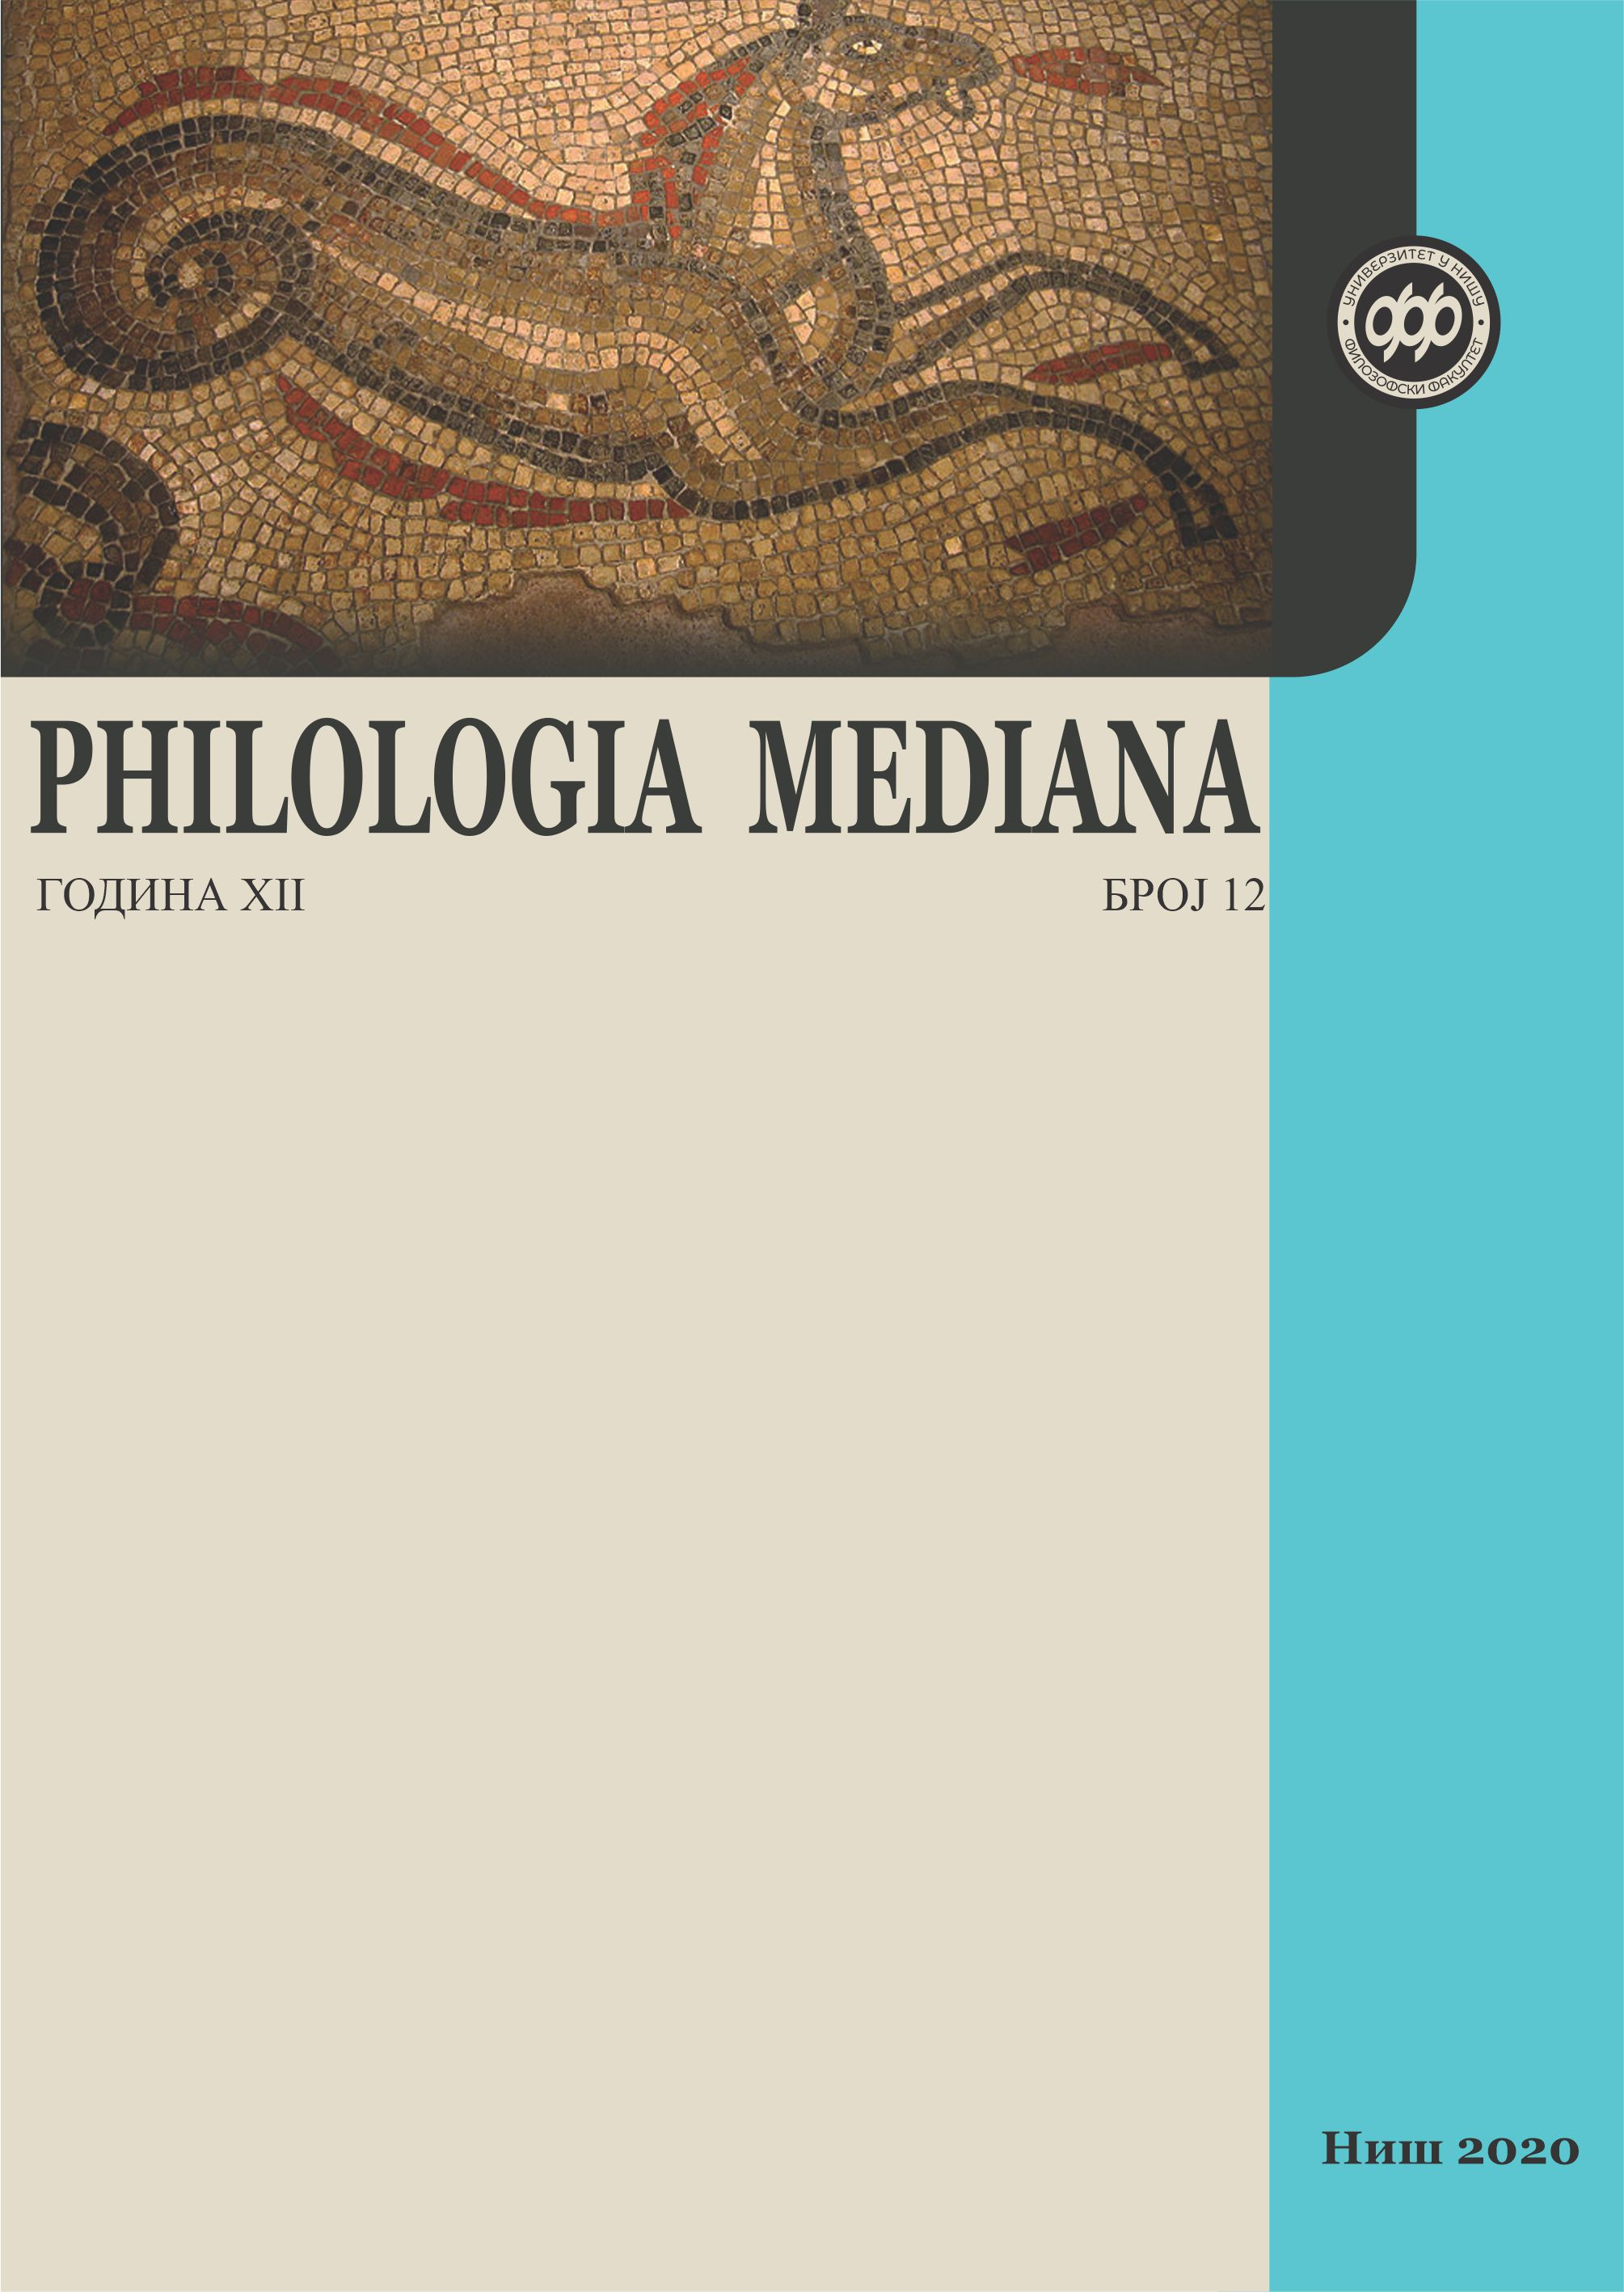 View Vol. 12 No. 12 (2020): PHILOLOGIA MEDIANA 12(2020)